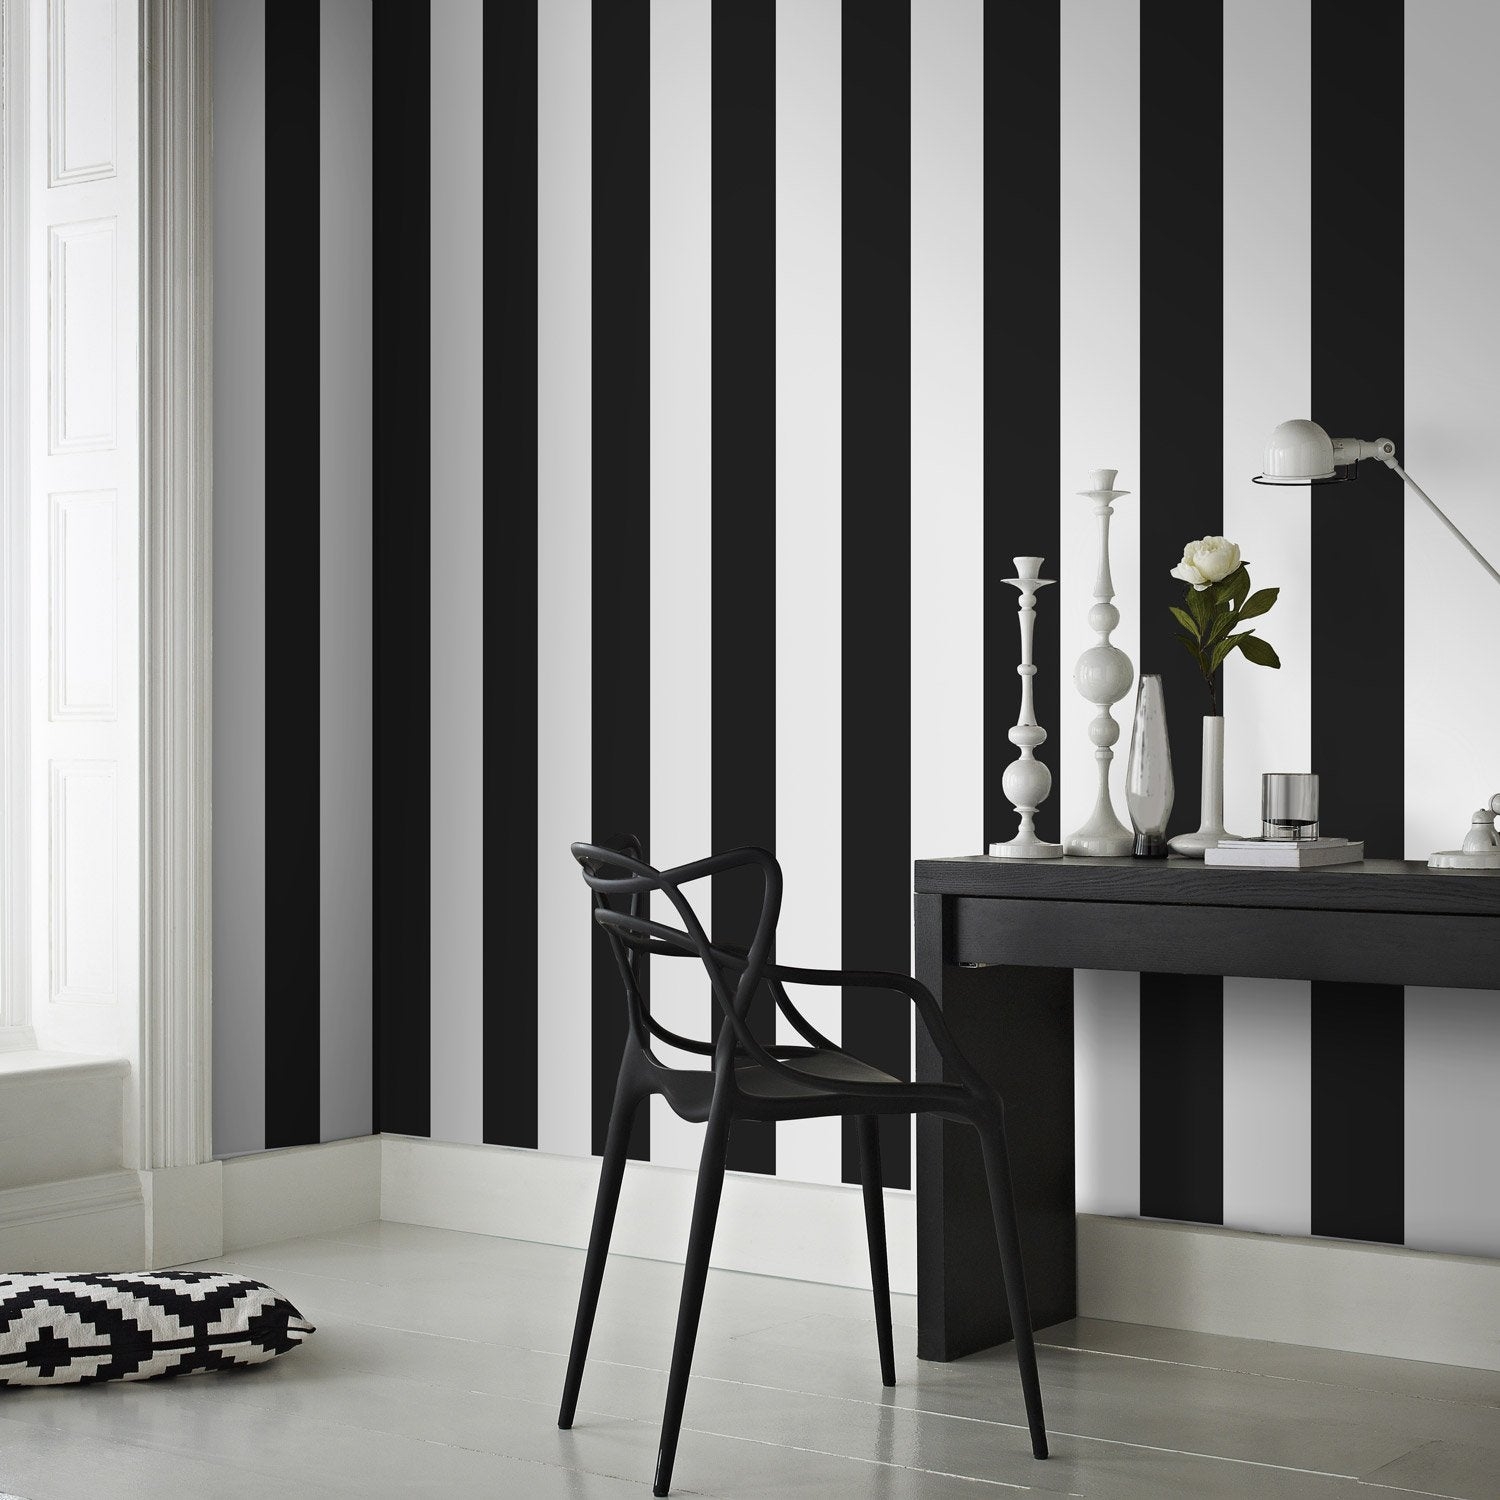 escalier peint en noir et blanc trendy peinture cage duescalier recherche google plus with. Black Bedroom Furniture Sets. Home Design Ideas